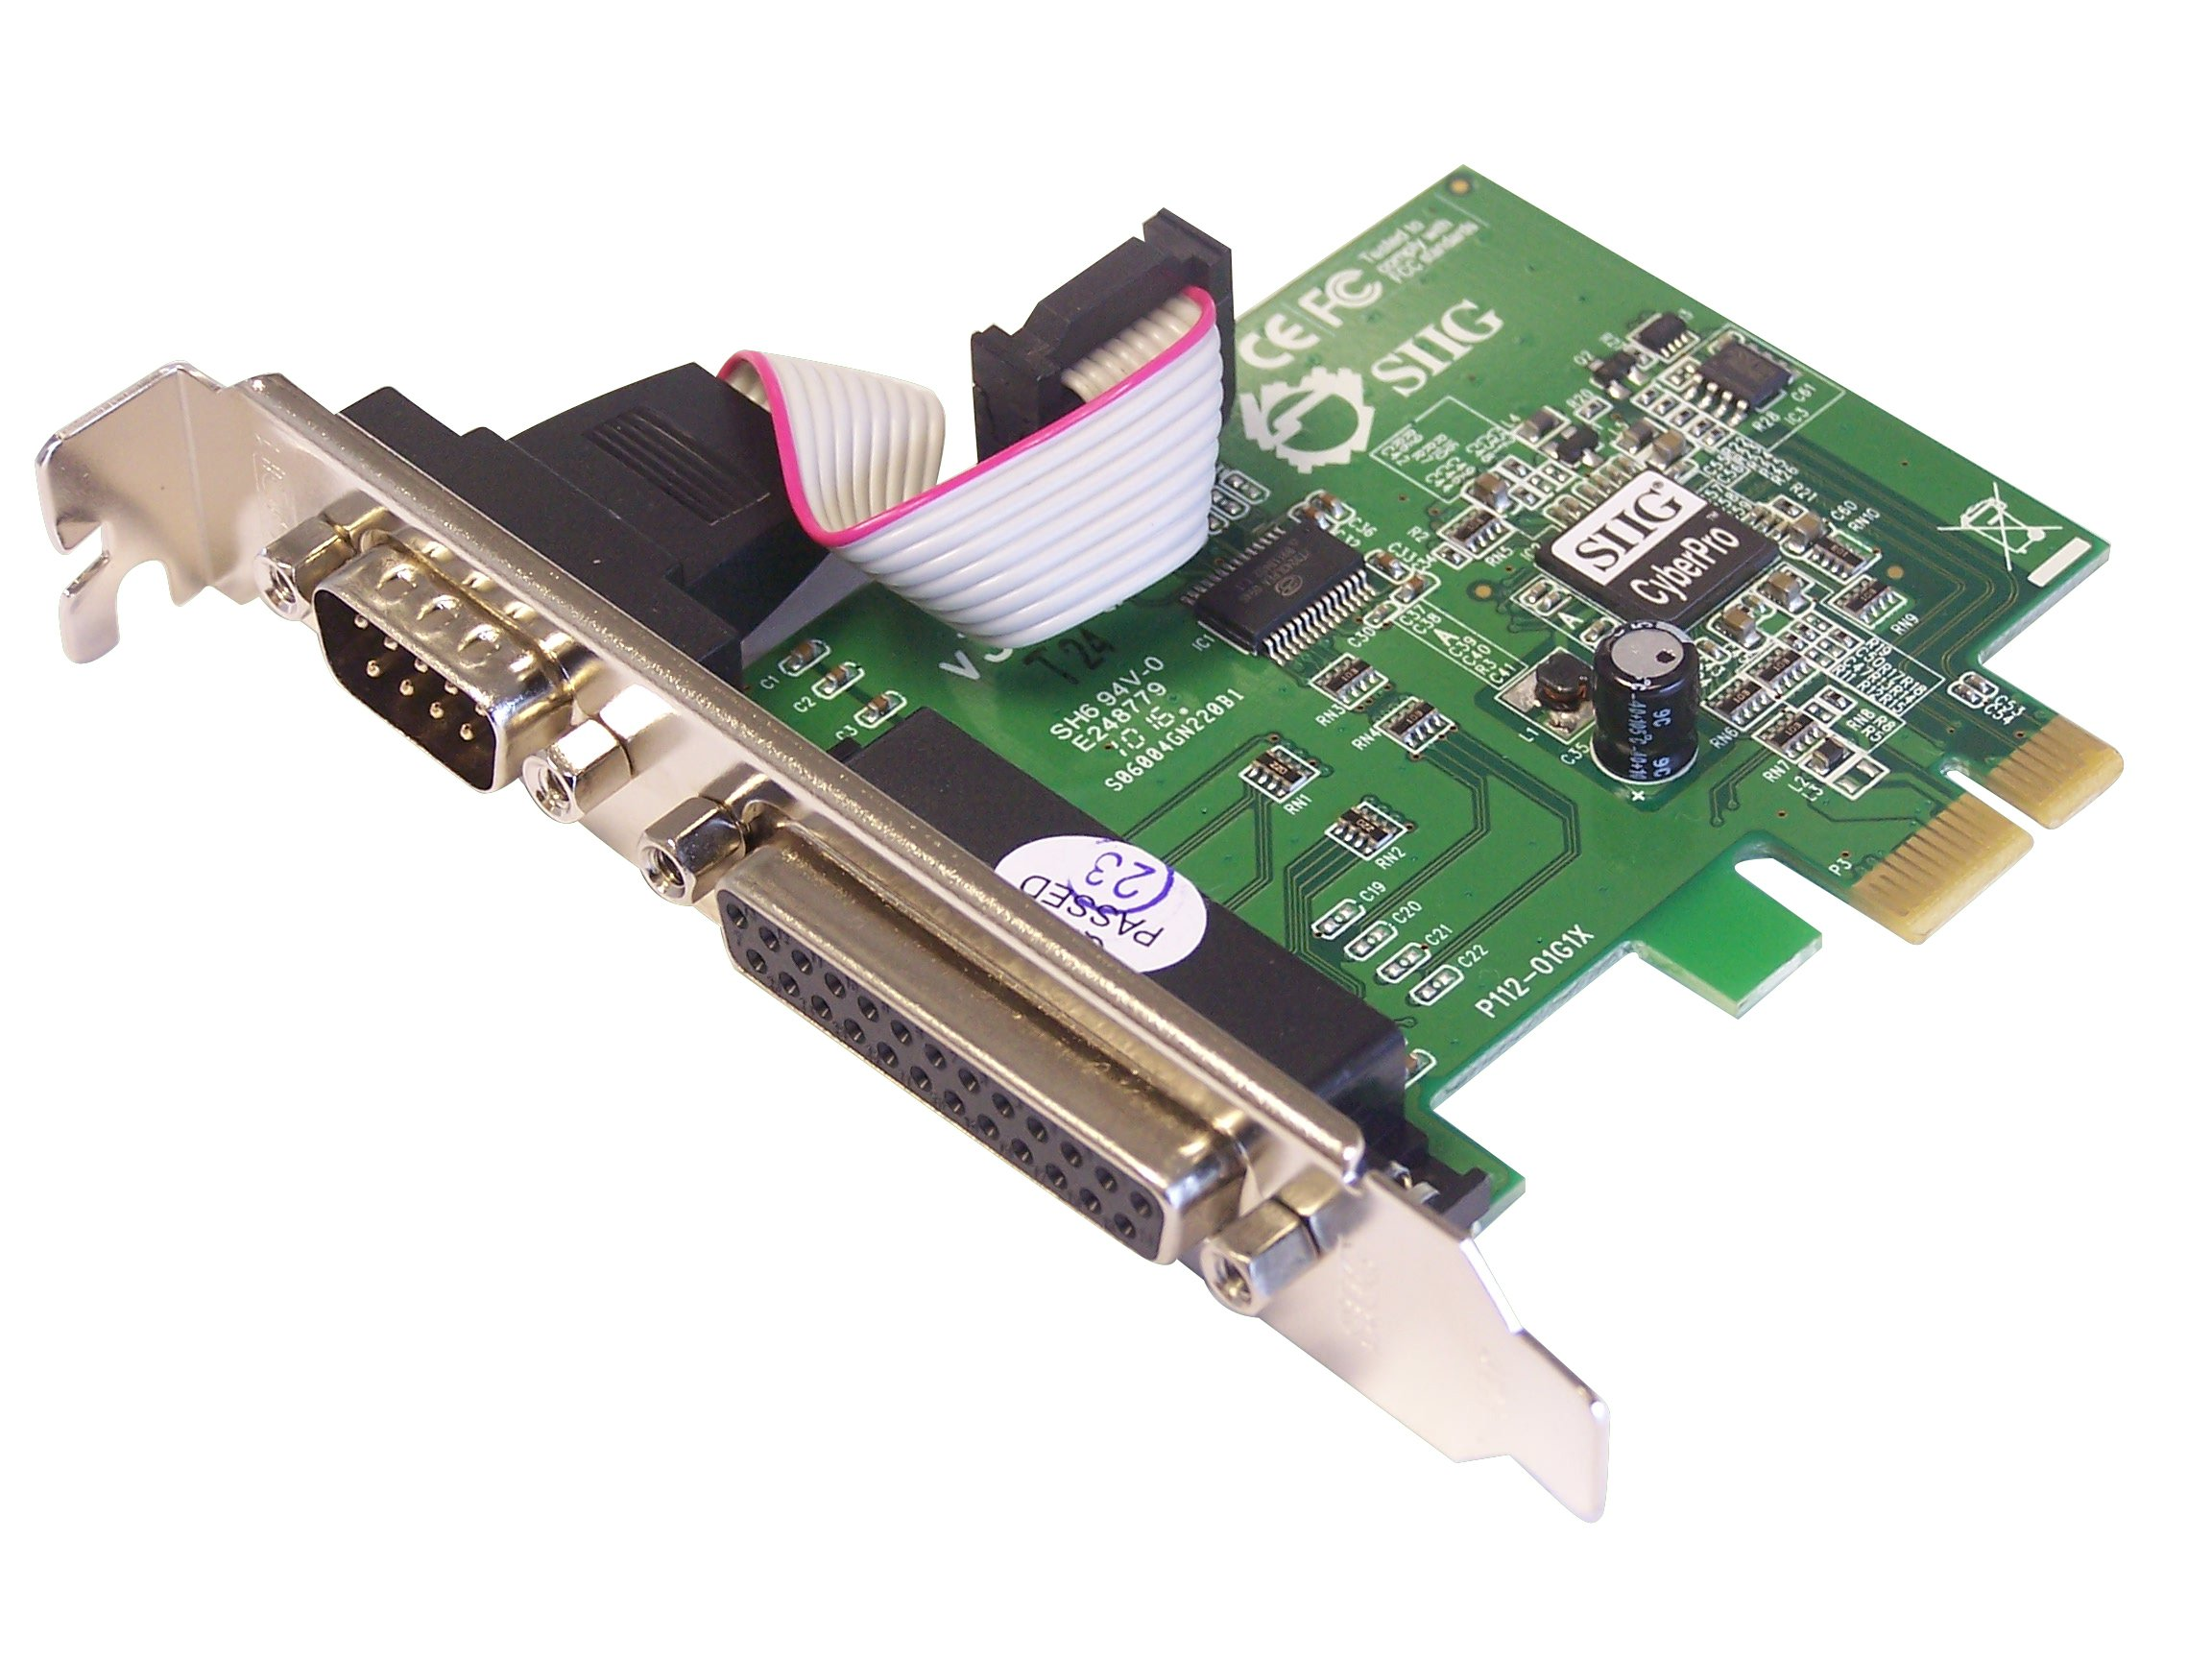 SIIG Cyber 1S1P PCIe Controller (JJ-E00011-S3) by SIIG